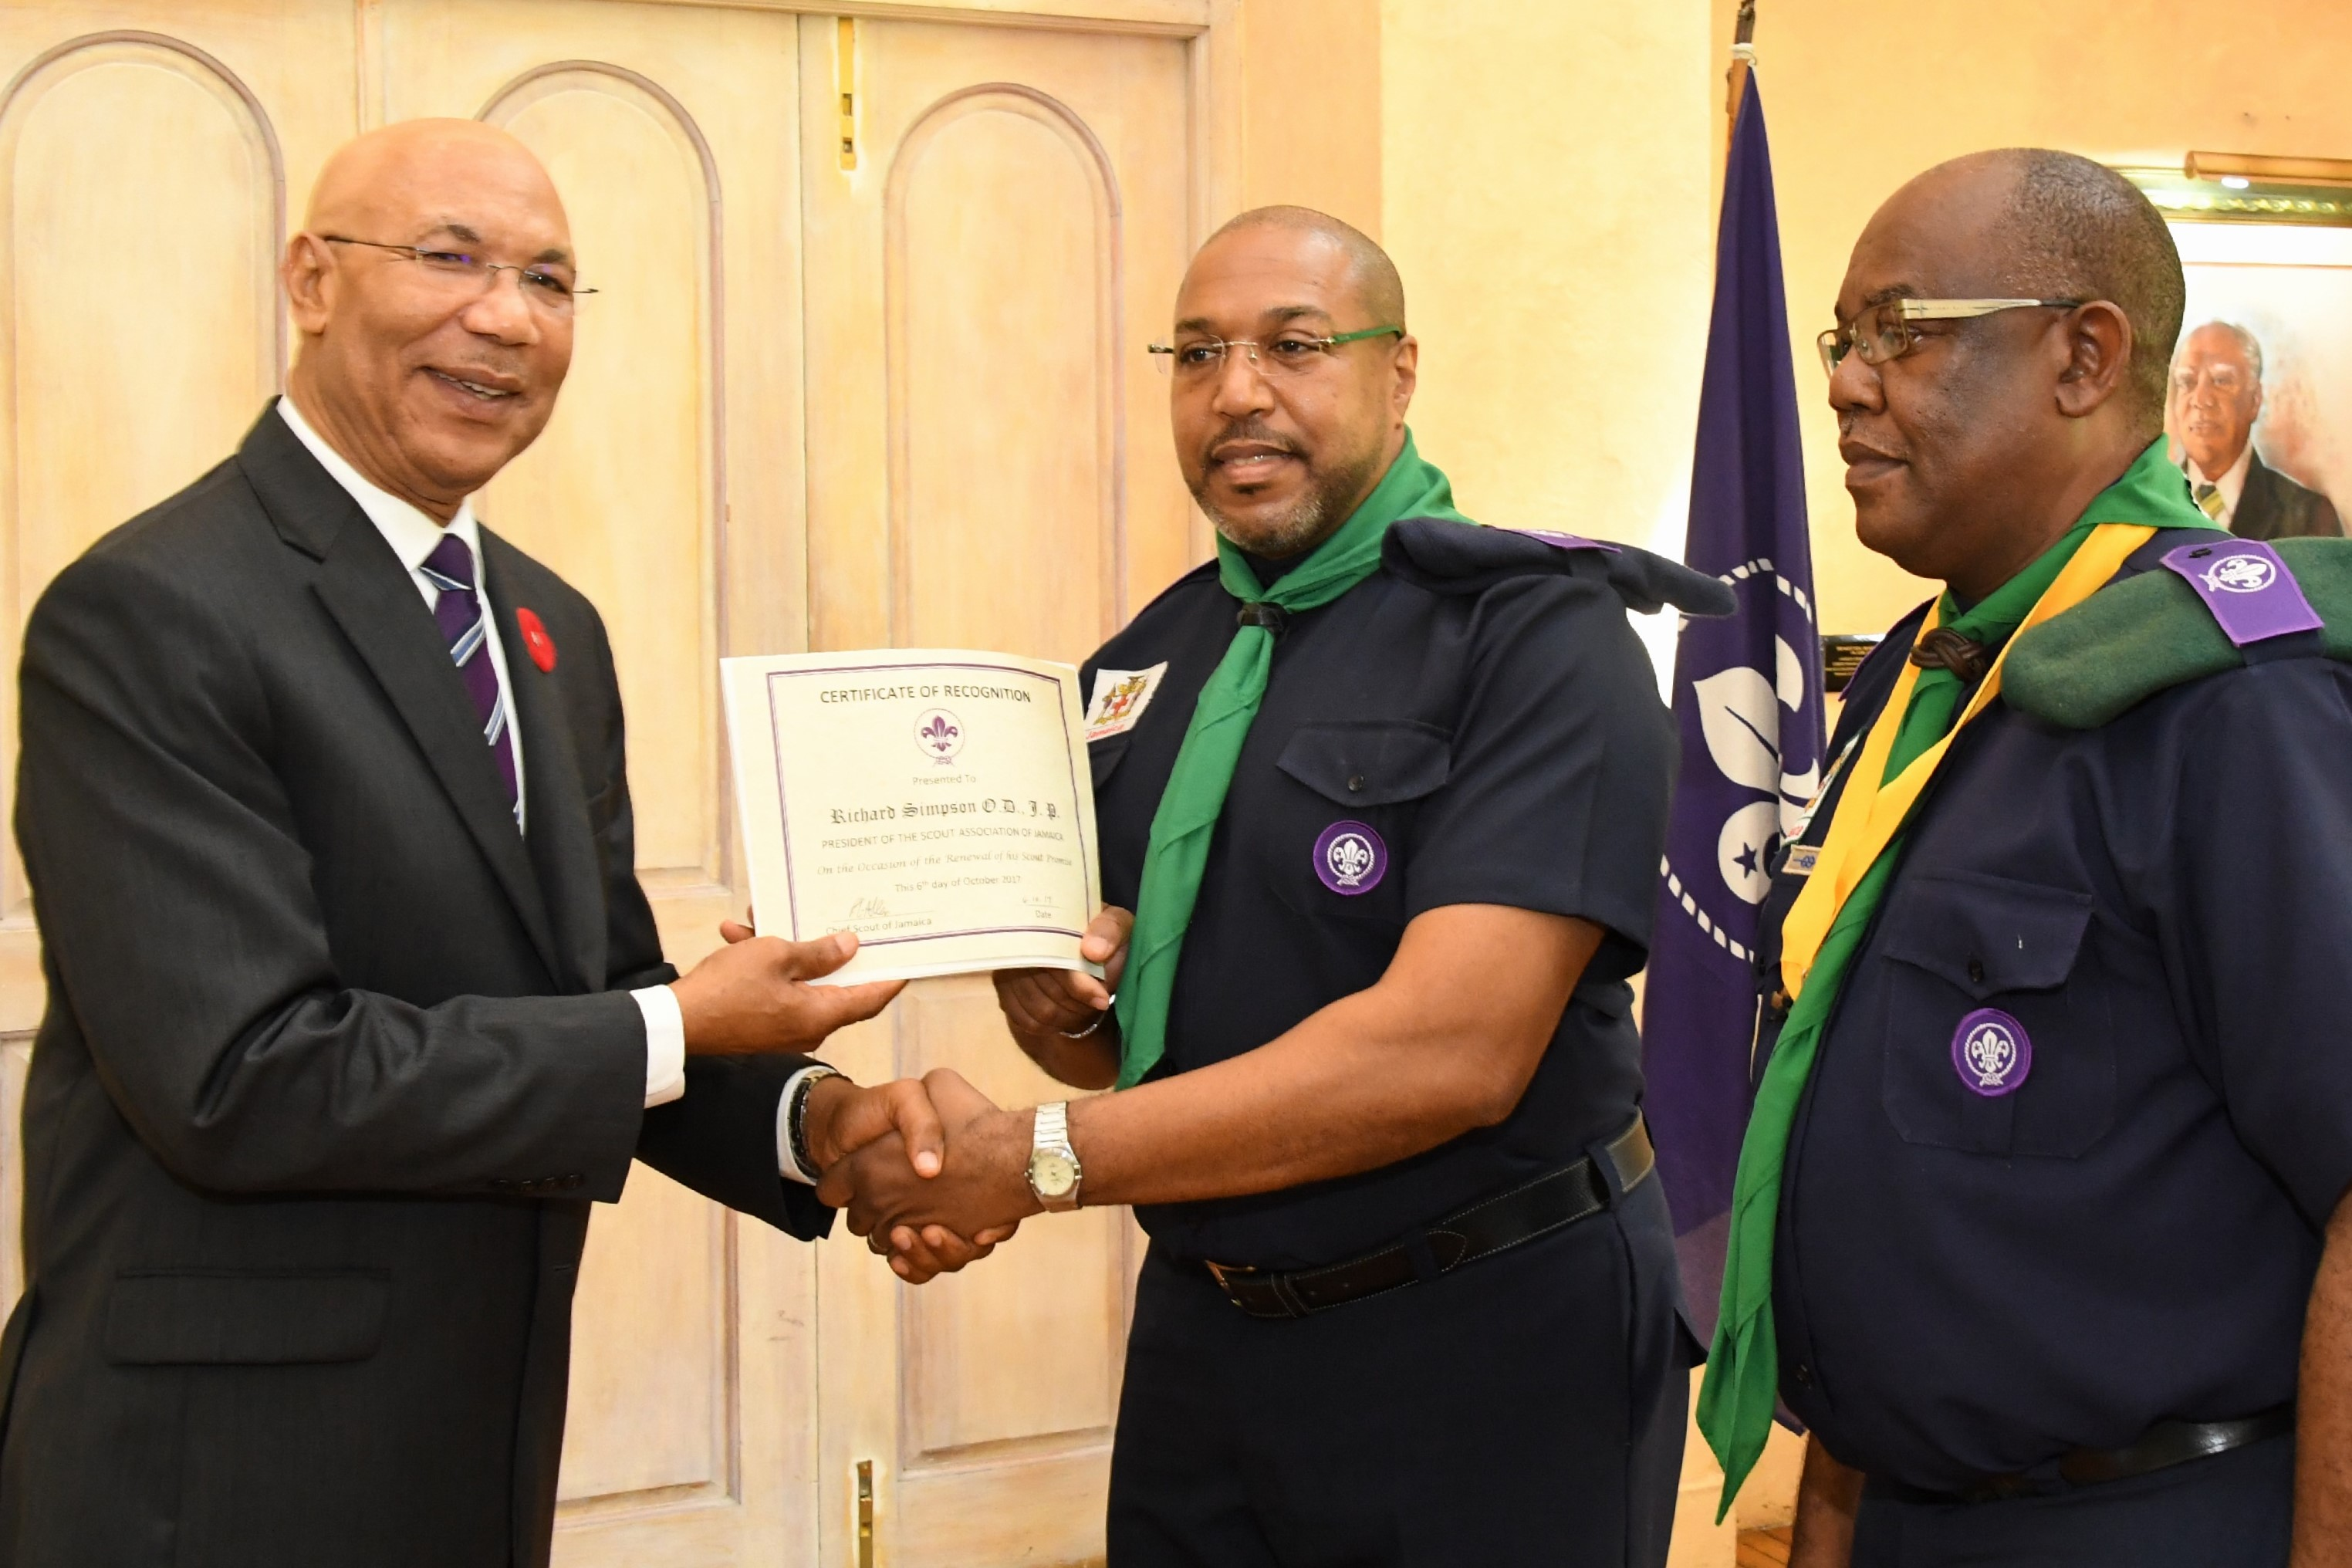 Governor-General Sir Patrick Allen (left) presents Mr. Richard Simpson with his certificate of appointment as the new President of the Scout Association of Jamaica.  Looking on is Mr. Maurice Brown Chief Commissioner.